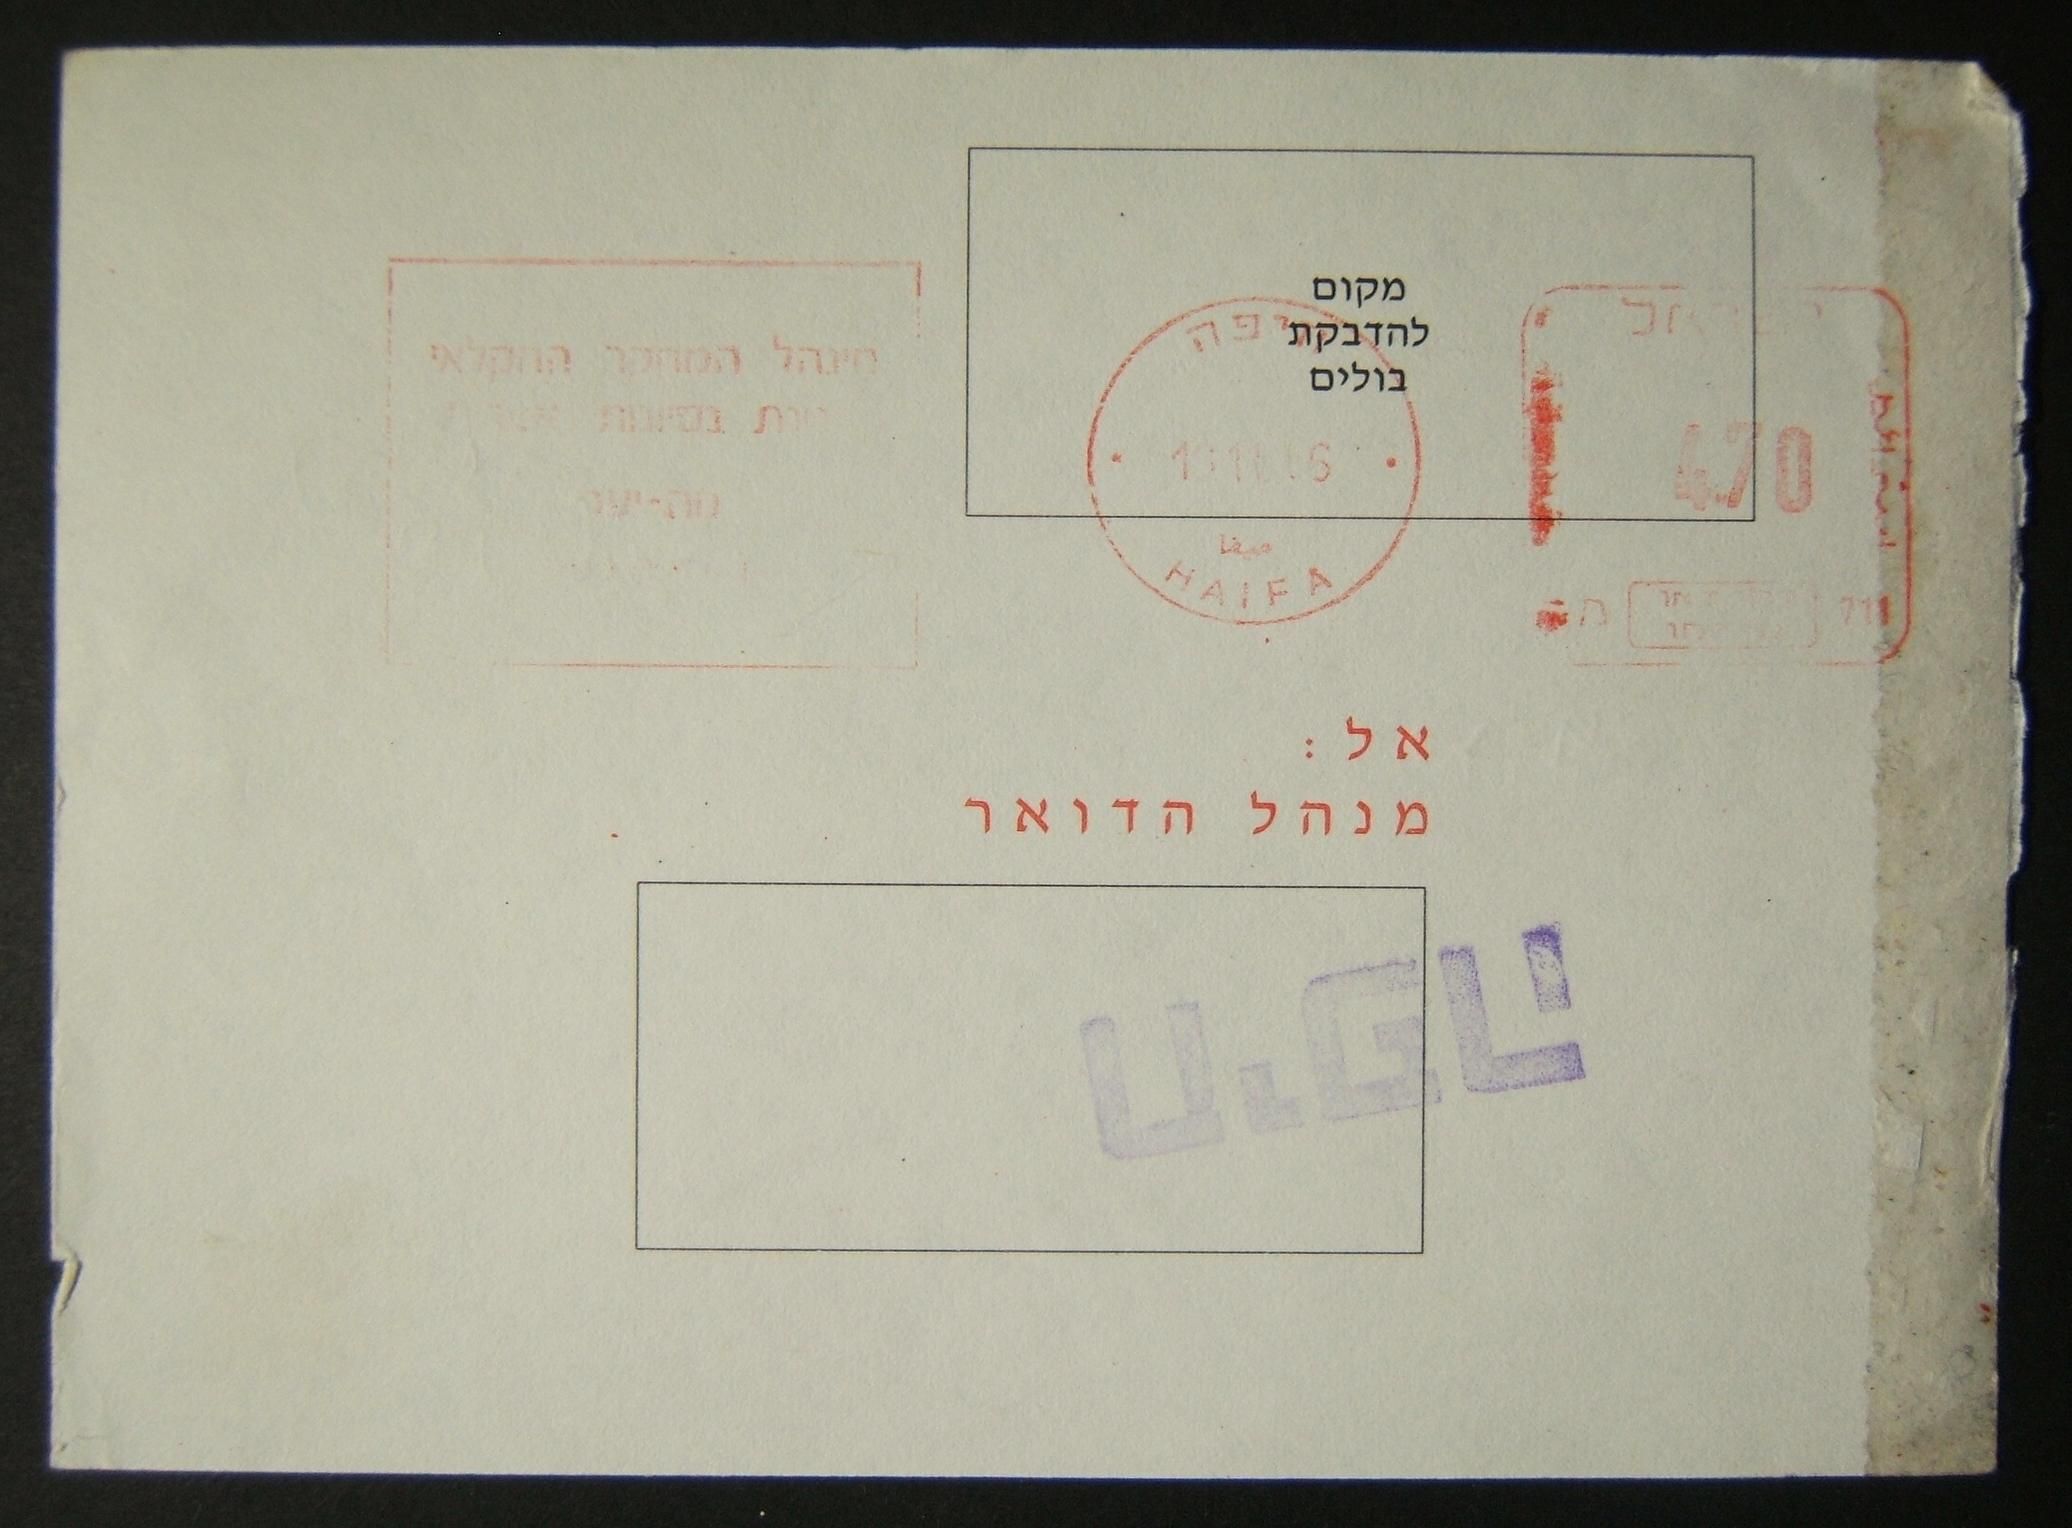 1996 incoming mail franked taxation notice: 13 NOV 1996 HE dated